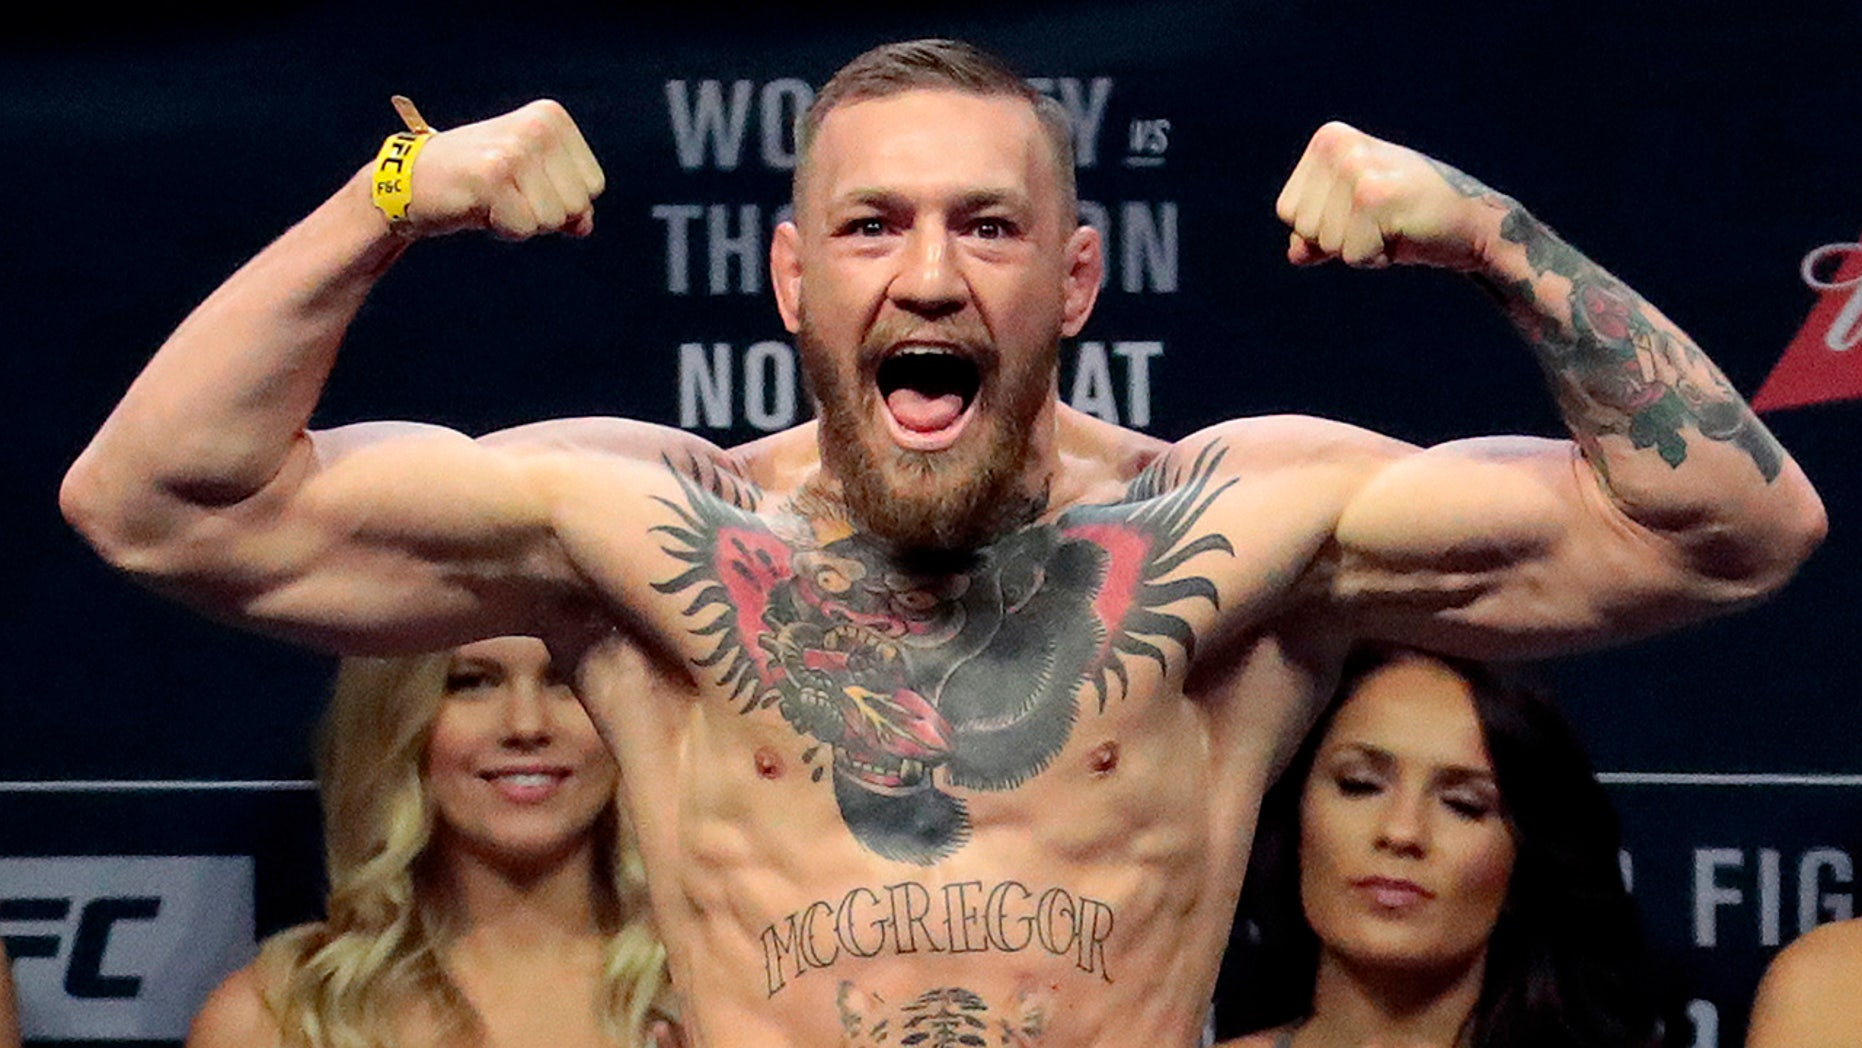 Conor McGregor will make his UFC return on Oct. 6, it was announced Friday.